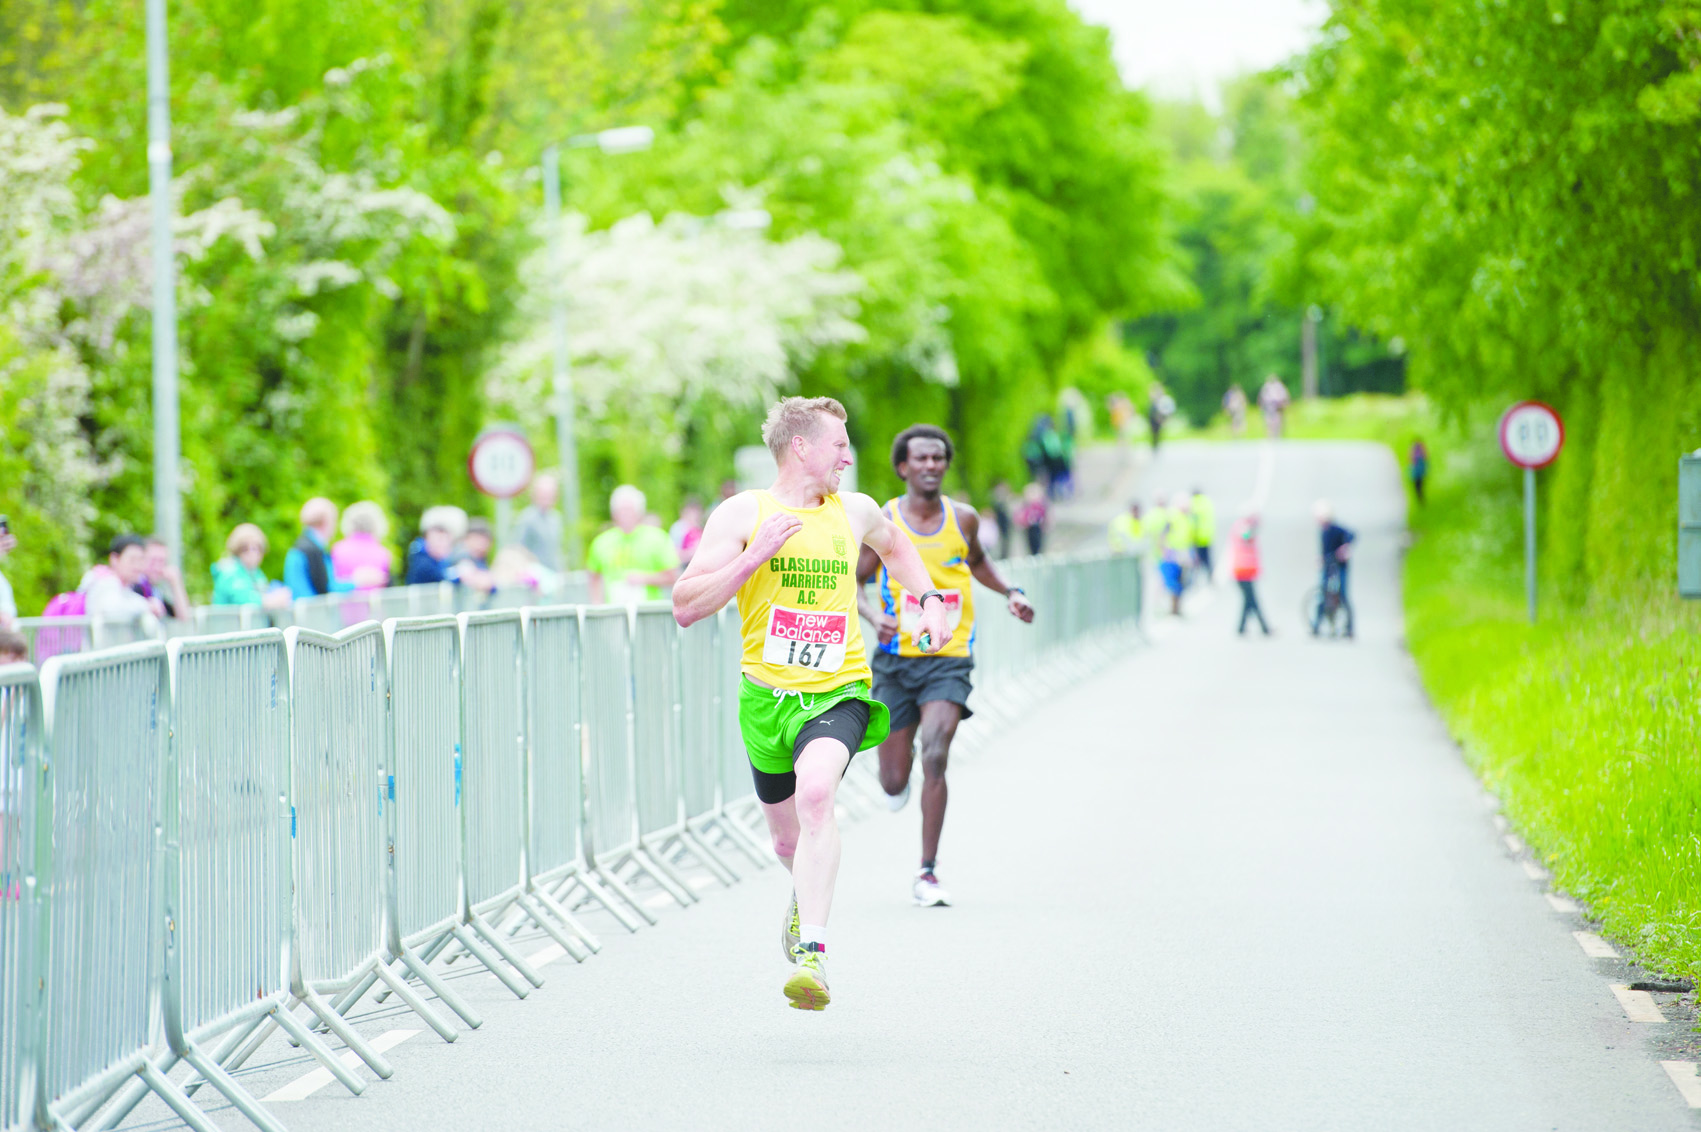 Christopher McGuirk, Glaslough Harriers, looks over his shoulder as he reaches the finish line just ahead of Eskander Turki, Monaghan Town Runners, to claim 3rd place. ©Rory Geary/The Northern Standard